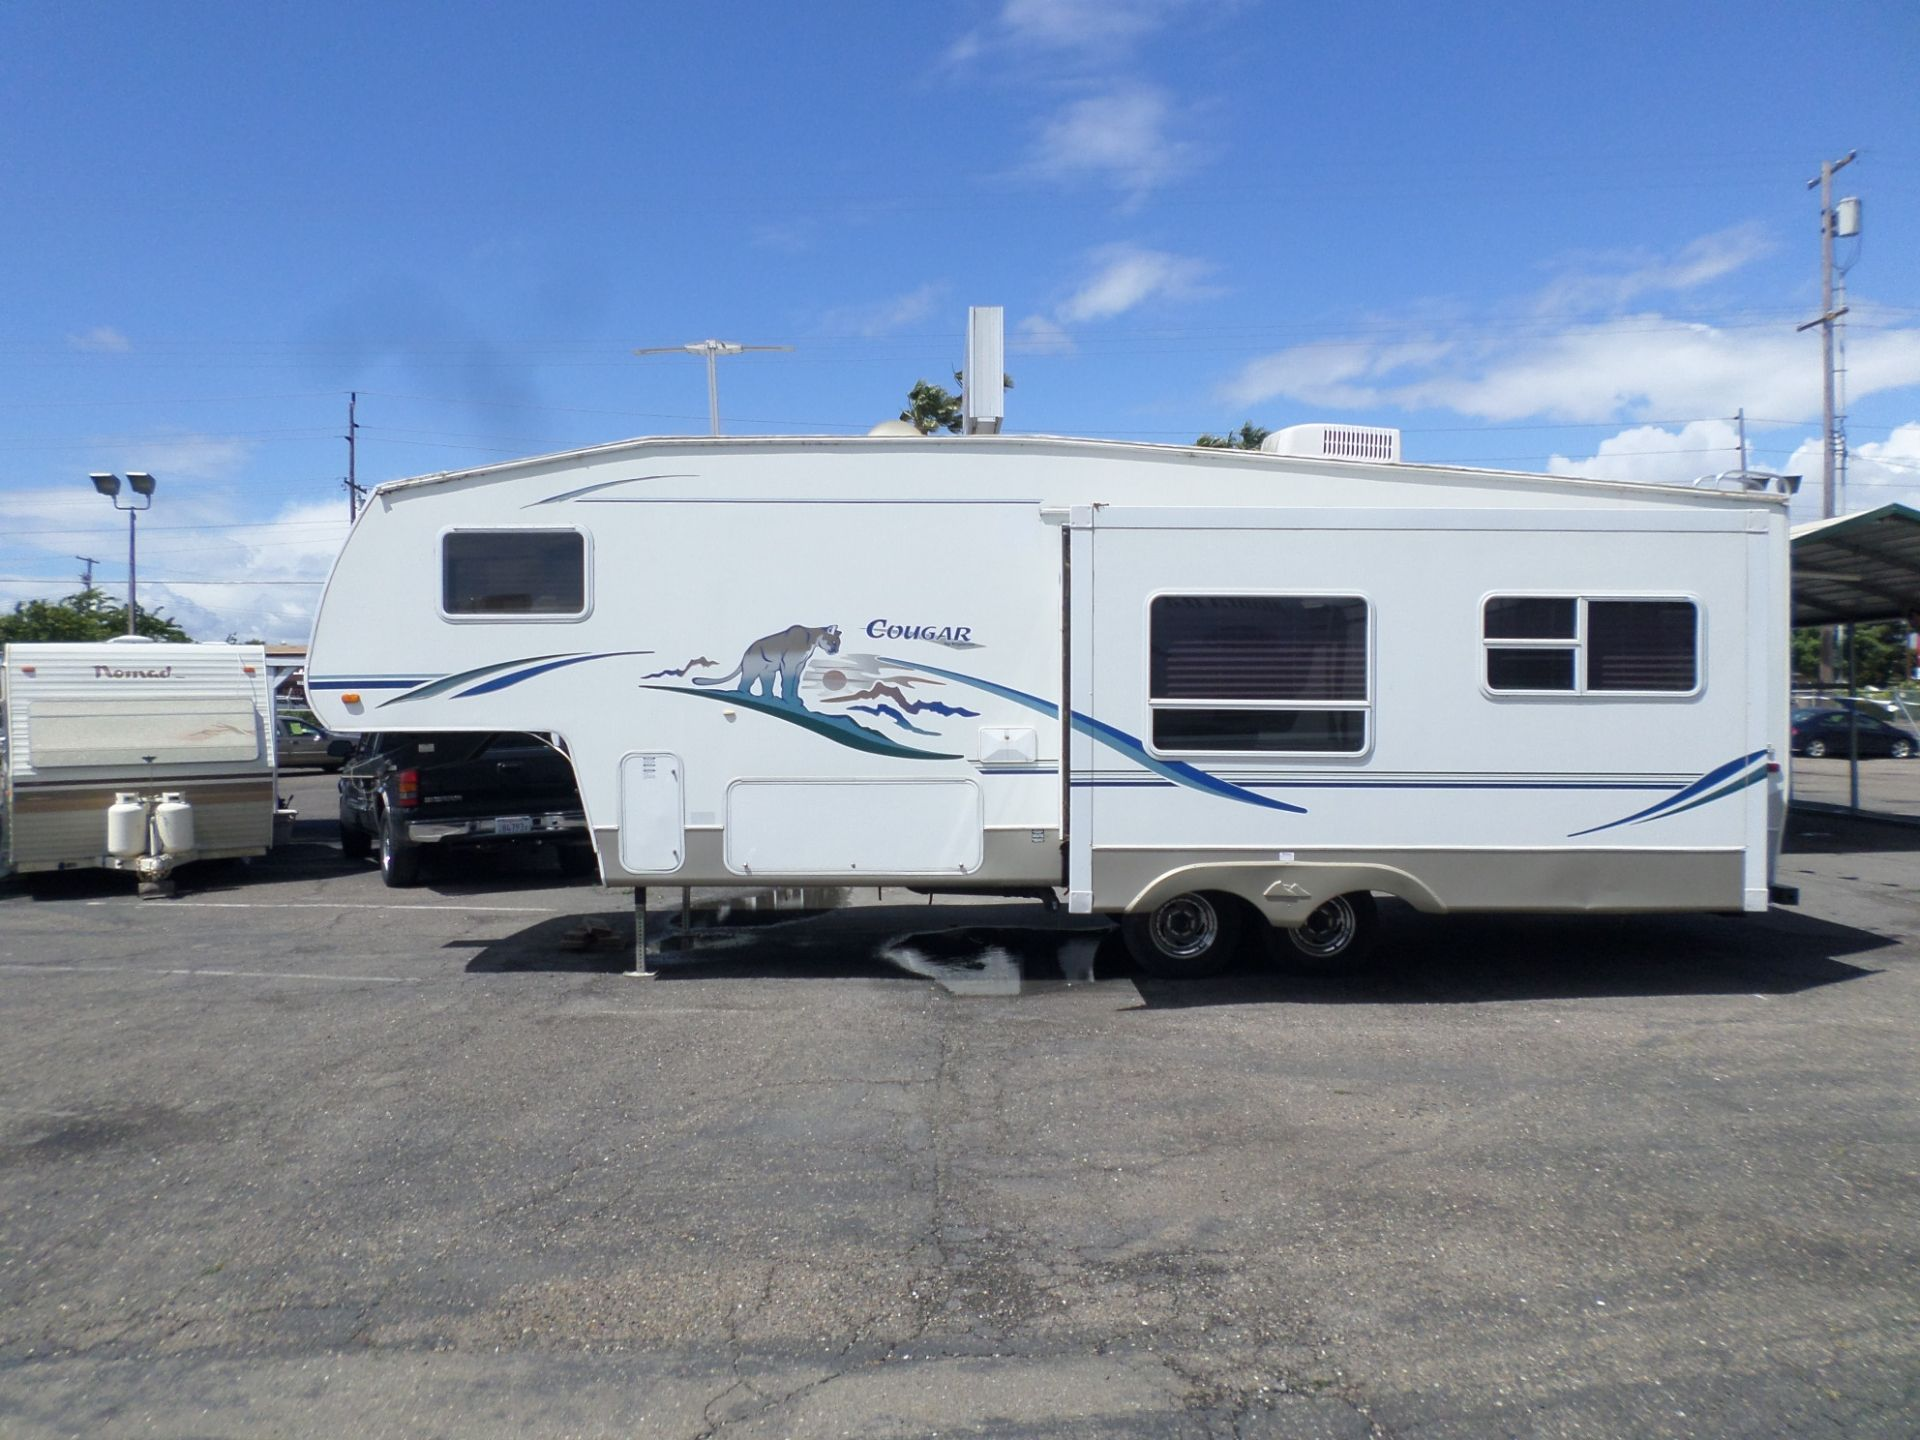 Pin On Rvs Motorhomes Trailers And Campers